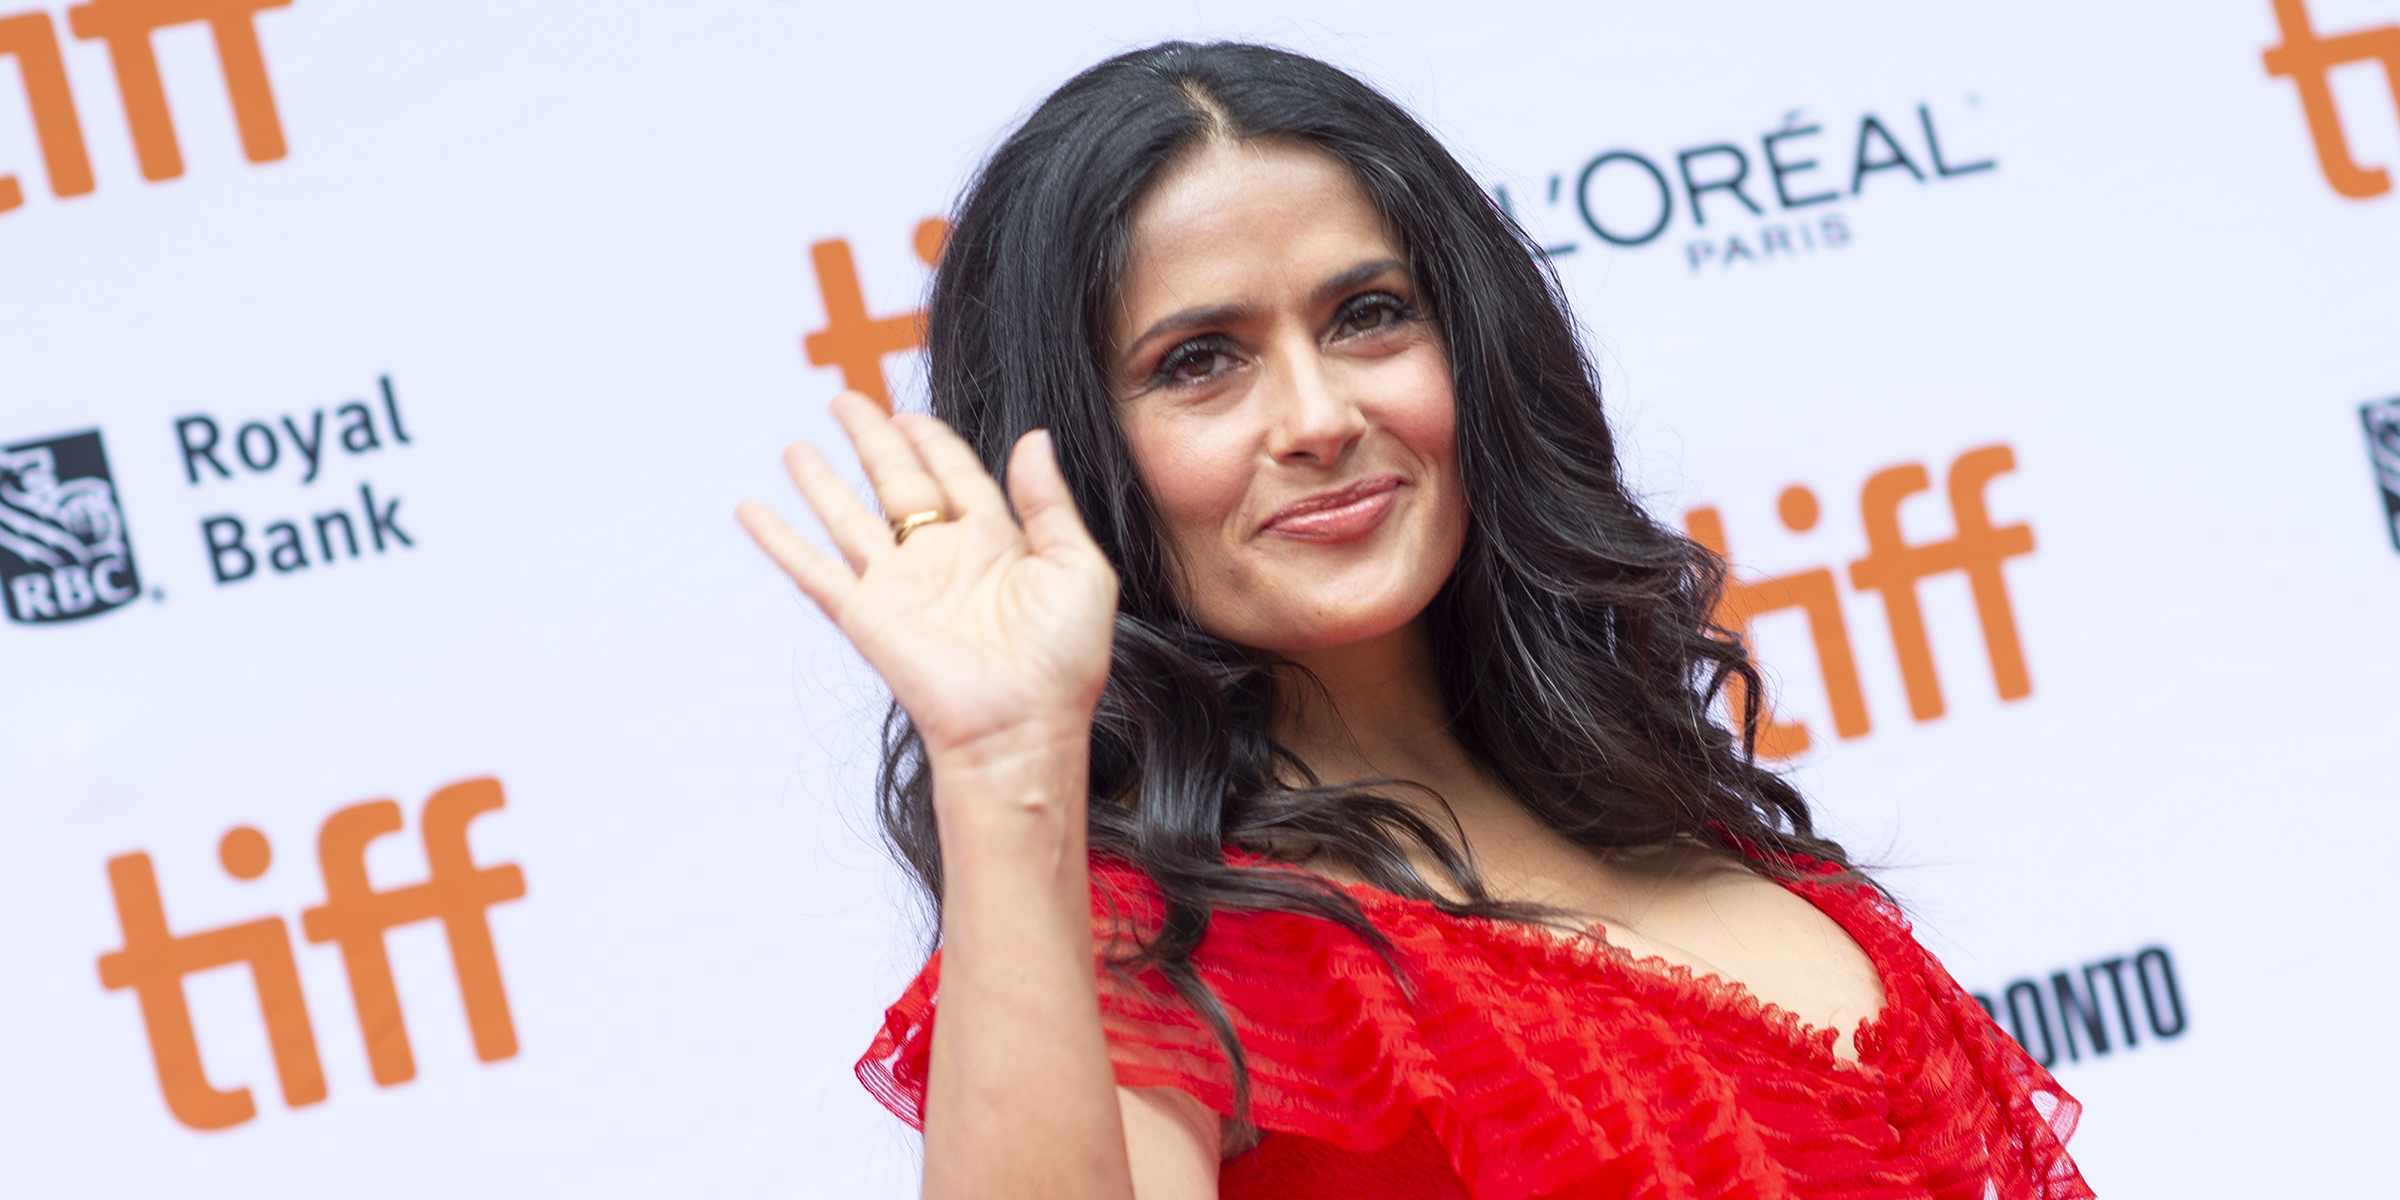 Salma Hayek Gets Haircut From Daughter In Sweet Birthday Video